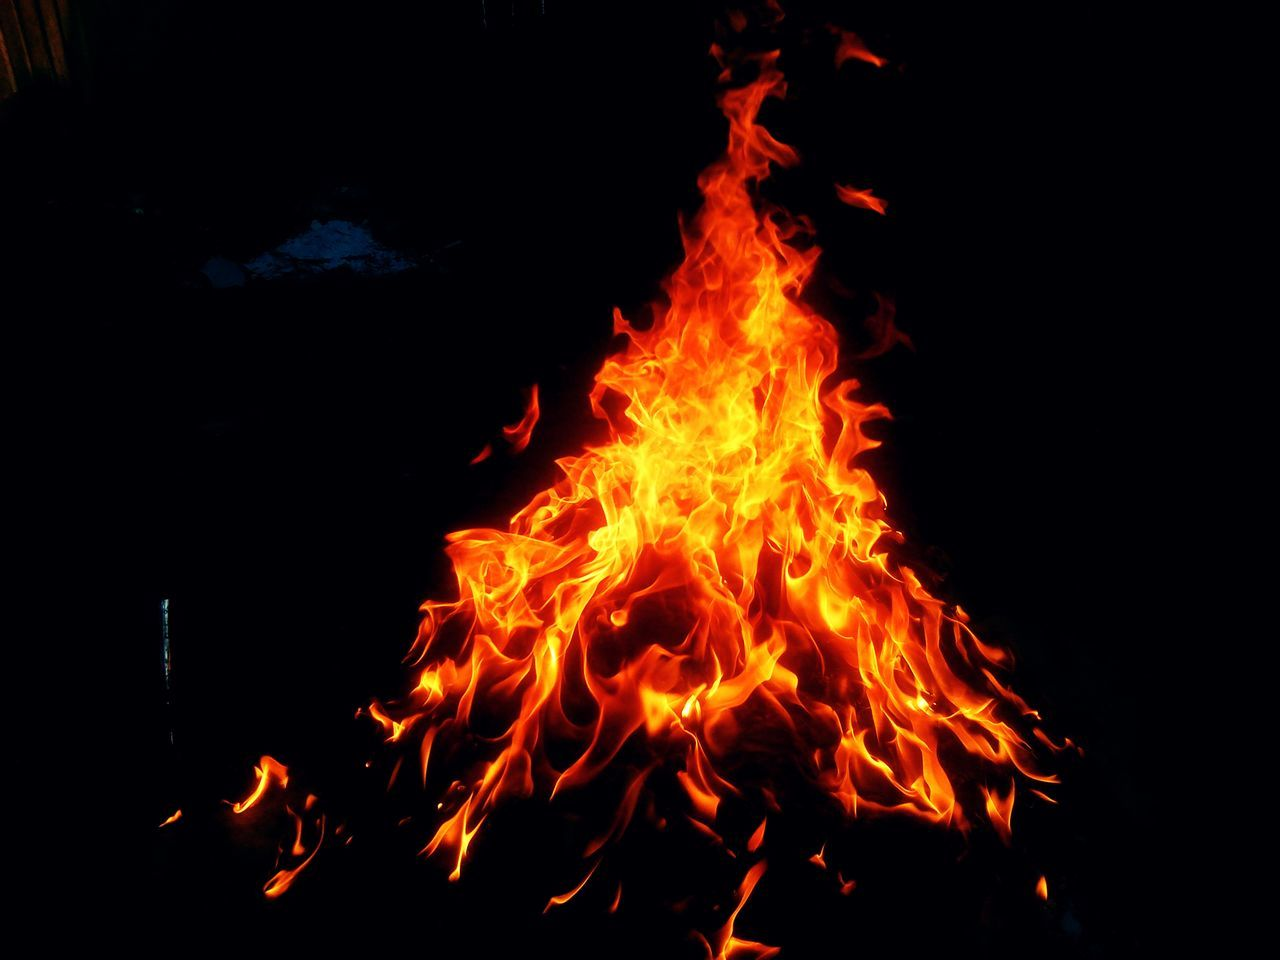 orange color, burning, no people, flame, outdoors, night, close-up, bonfire, nature